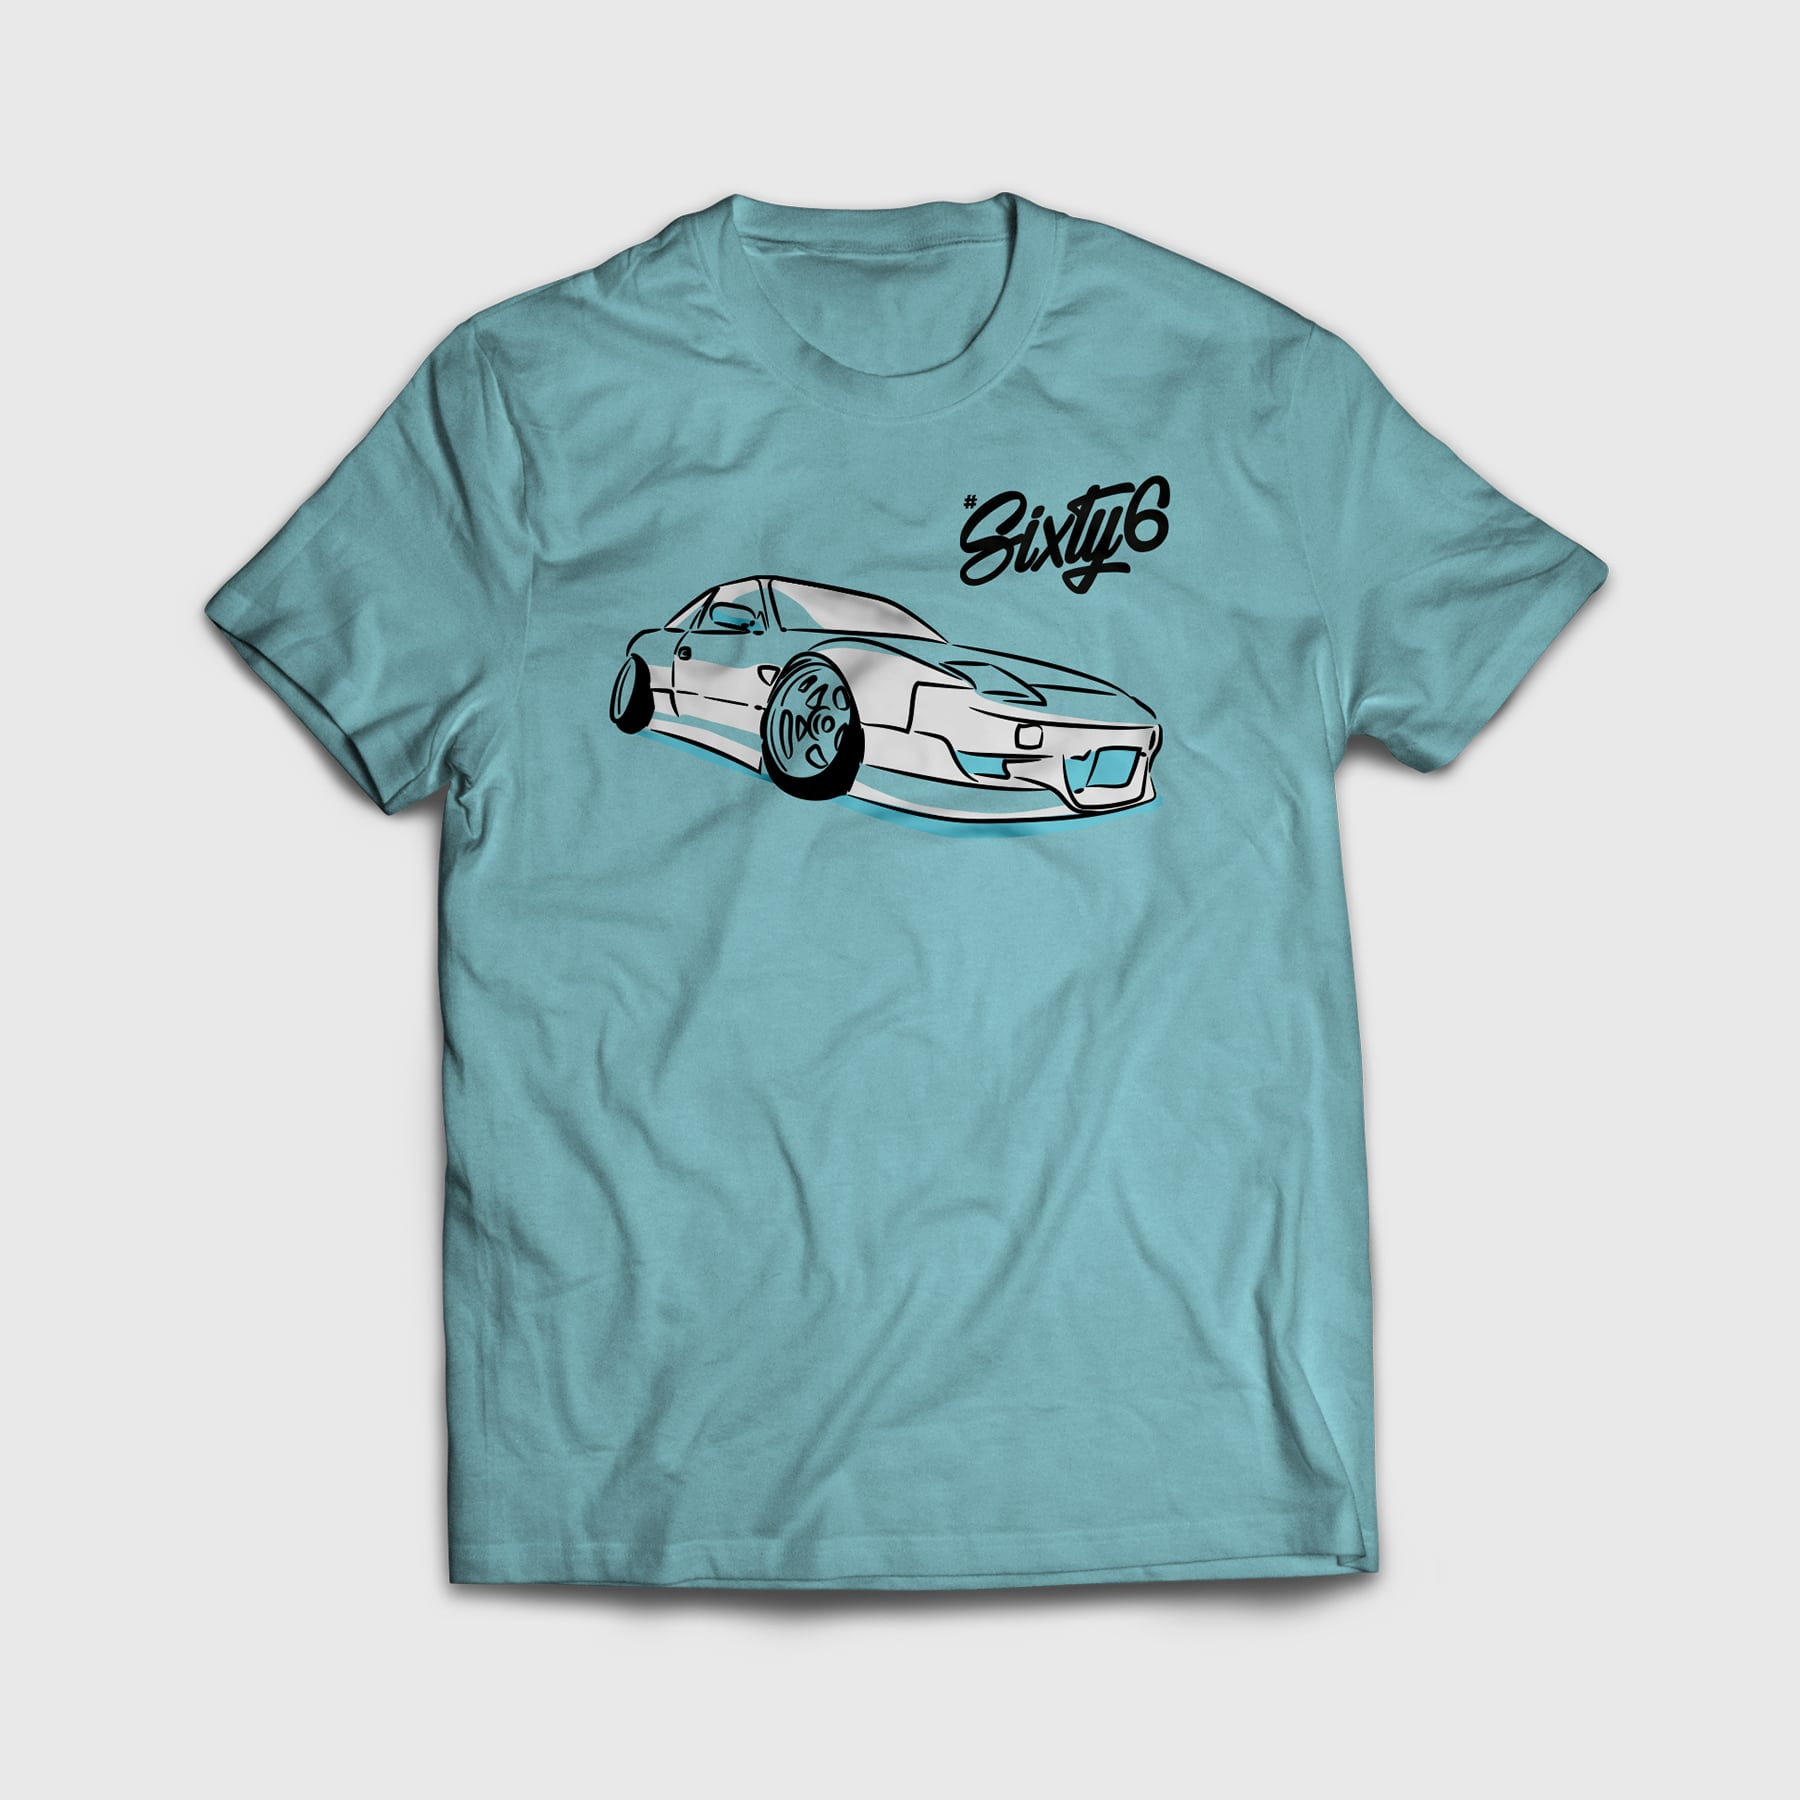 hashtag sixty six car graphic on blue tshirt